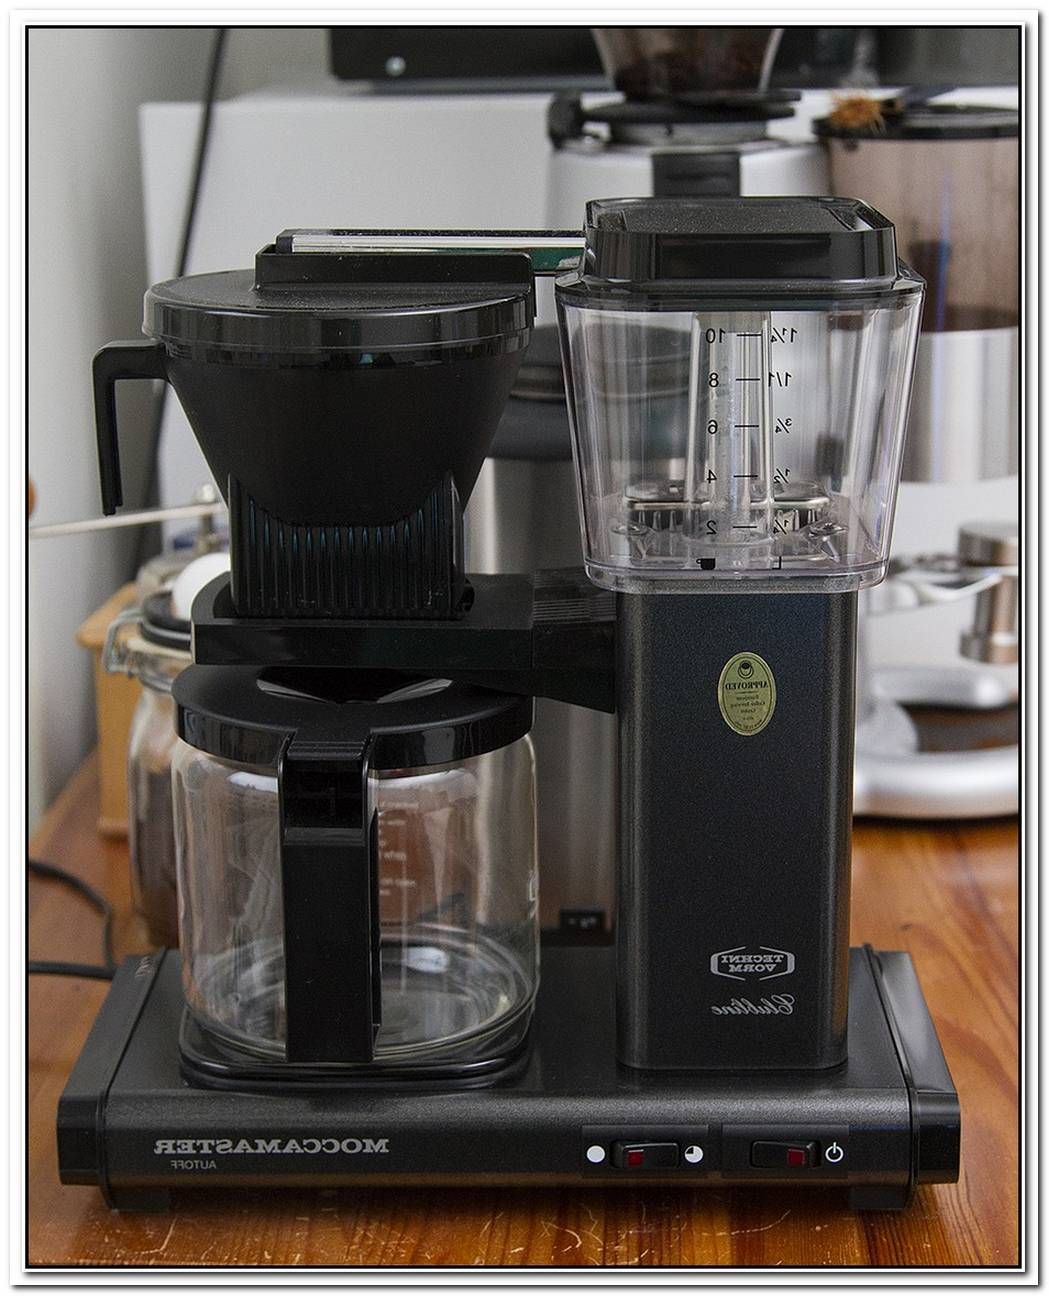 The Technivorm Grand Coffee Maker Aka The Moccamaster